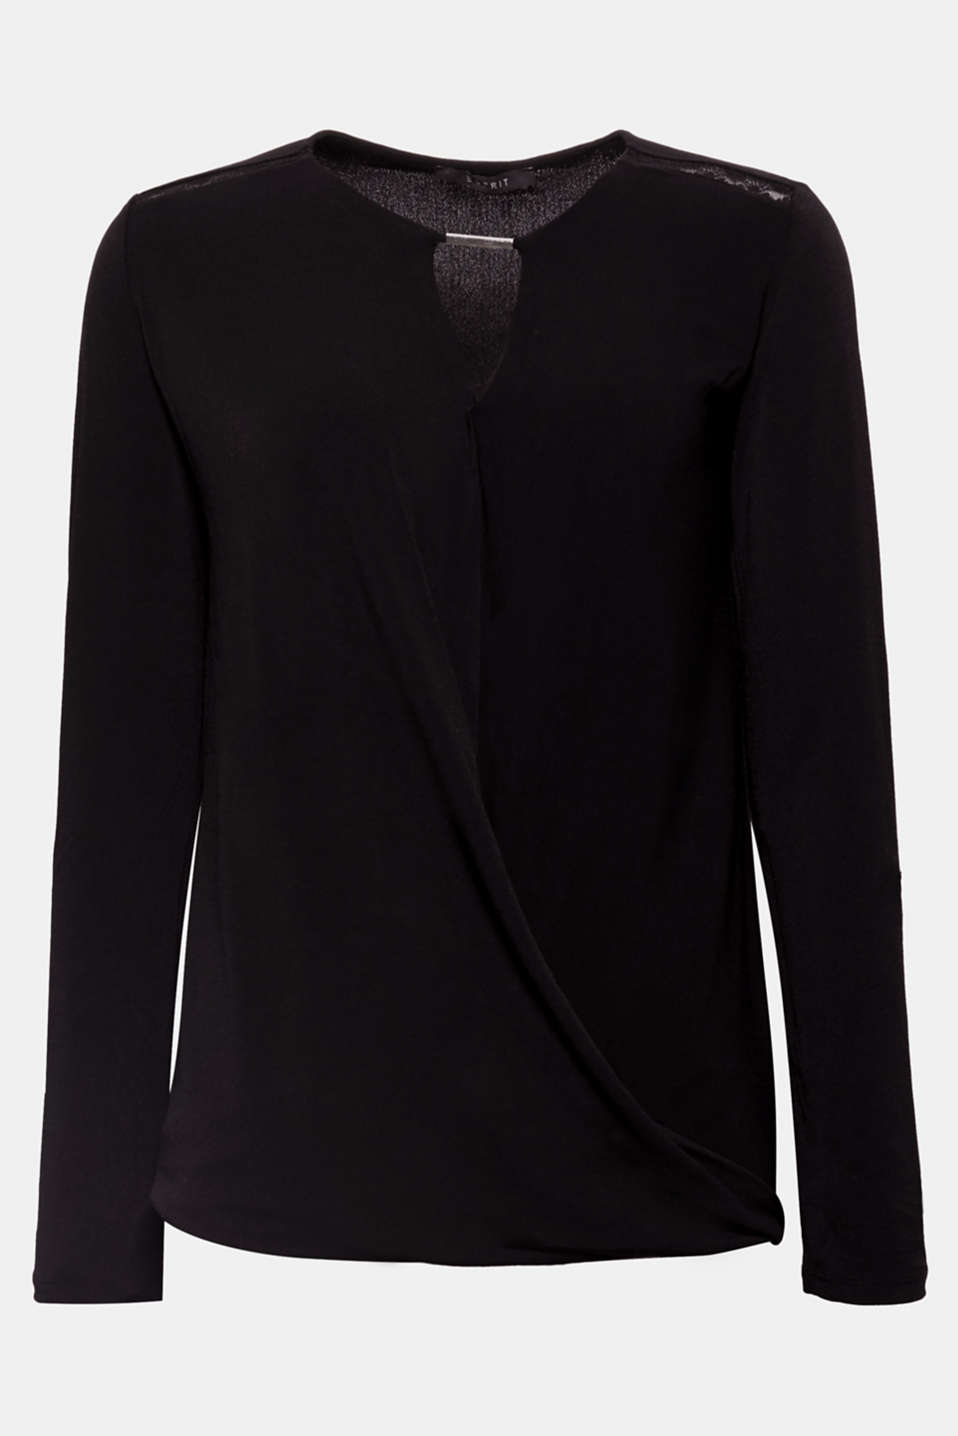 Casual and chic, this long sleeve top with stretch for comfort features a wrap-over effect and decorative details.